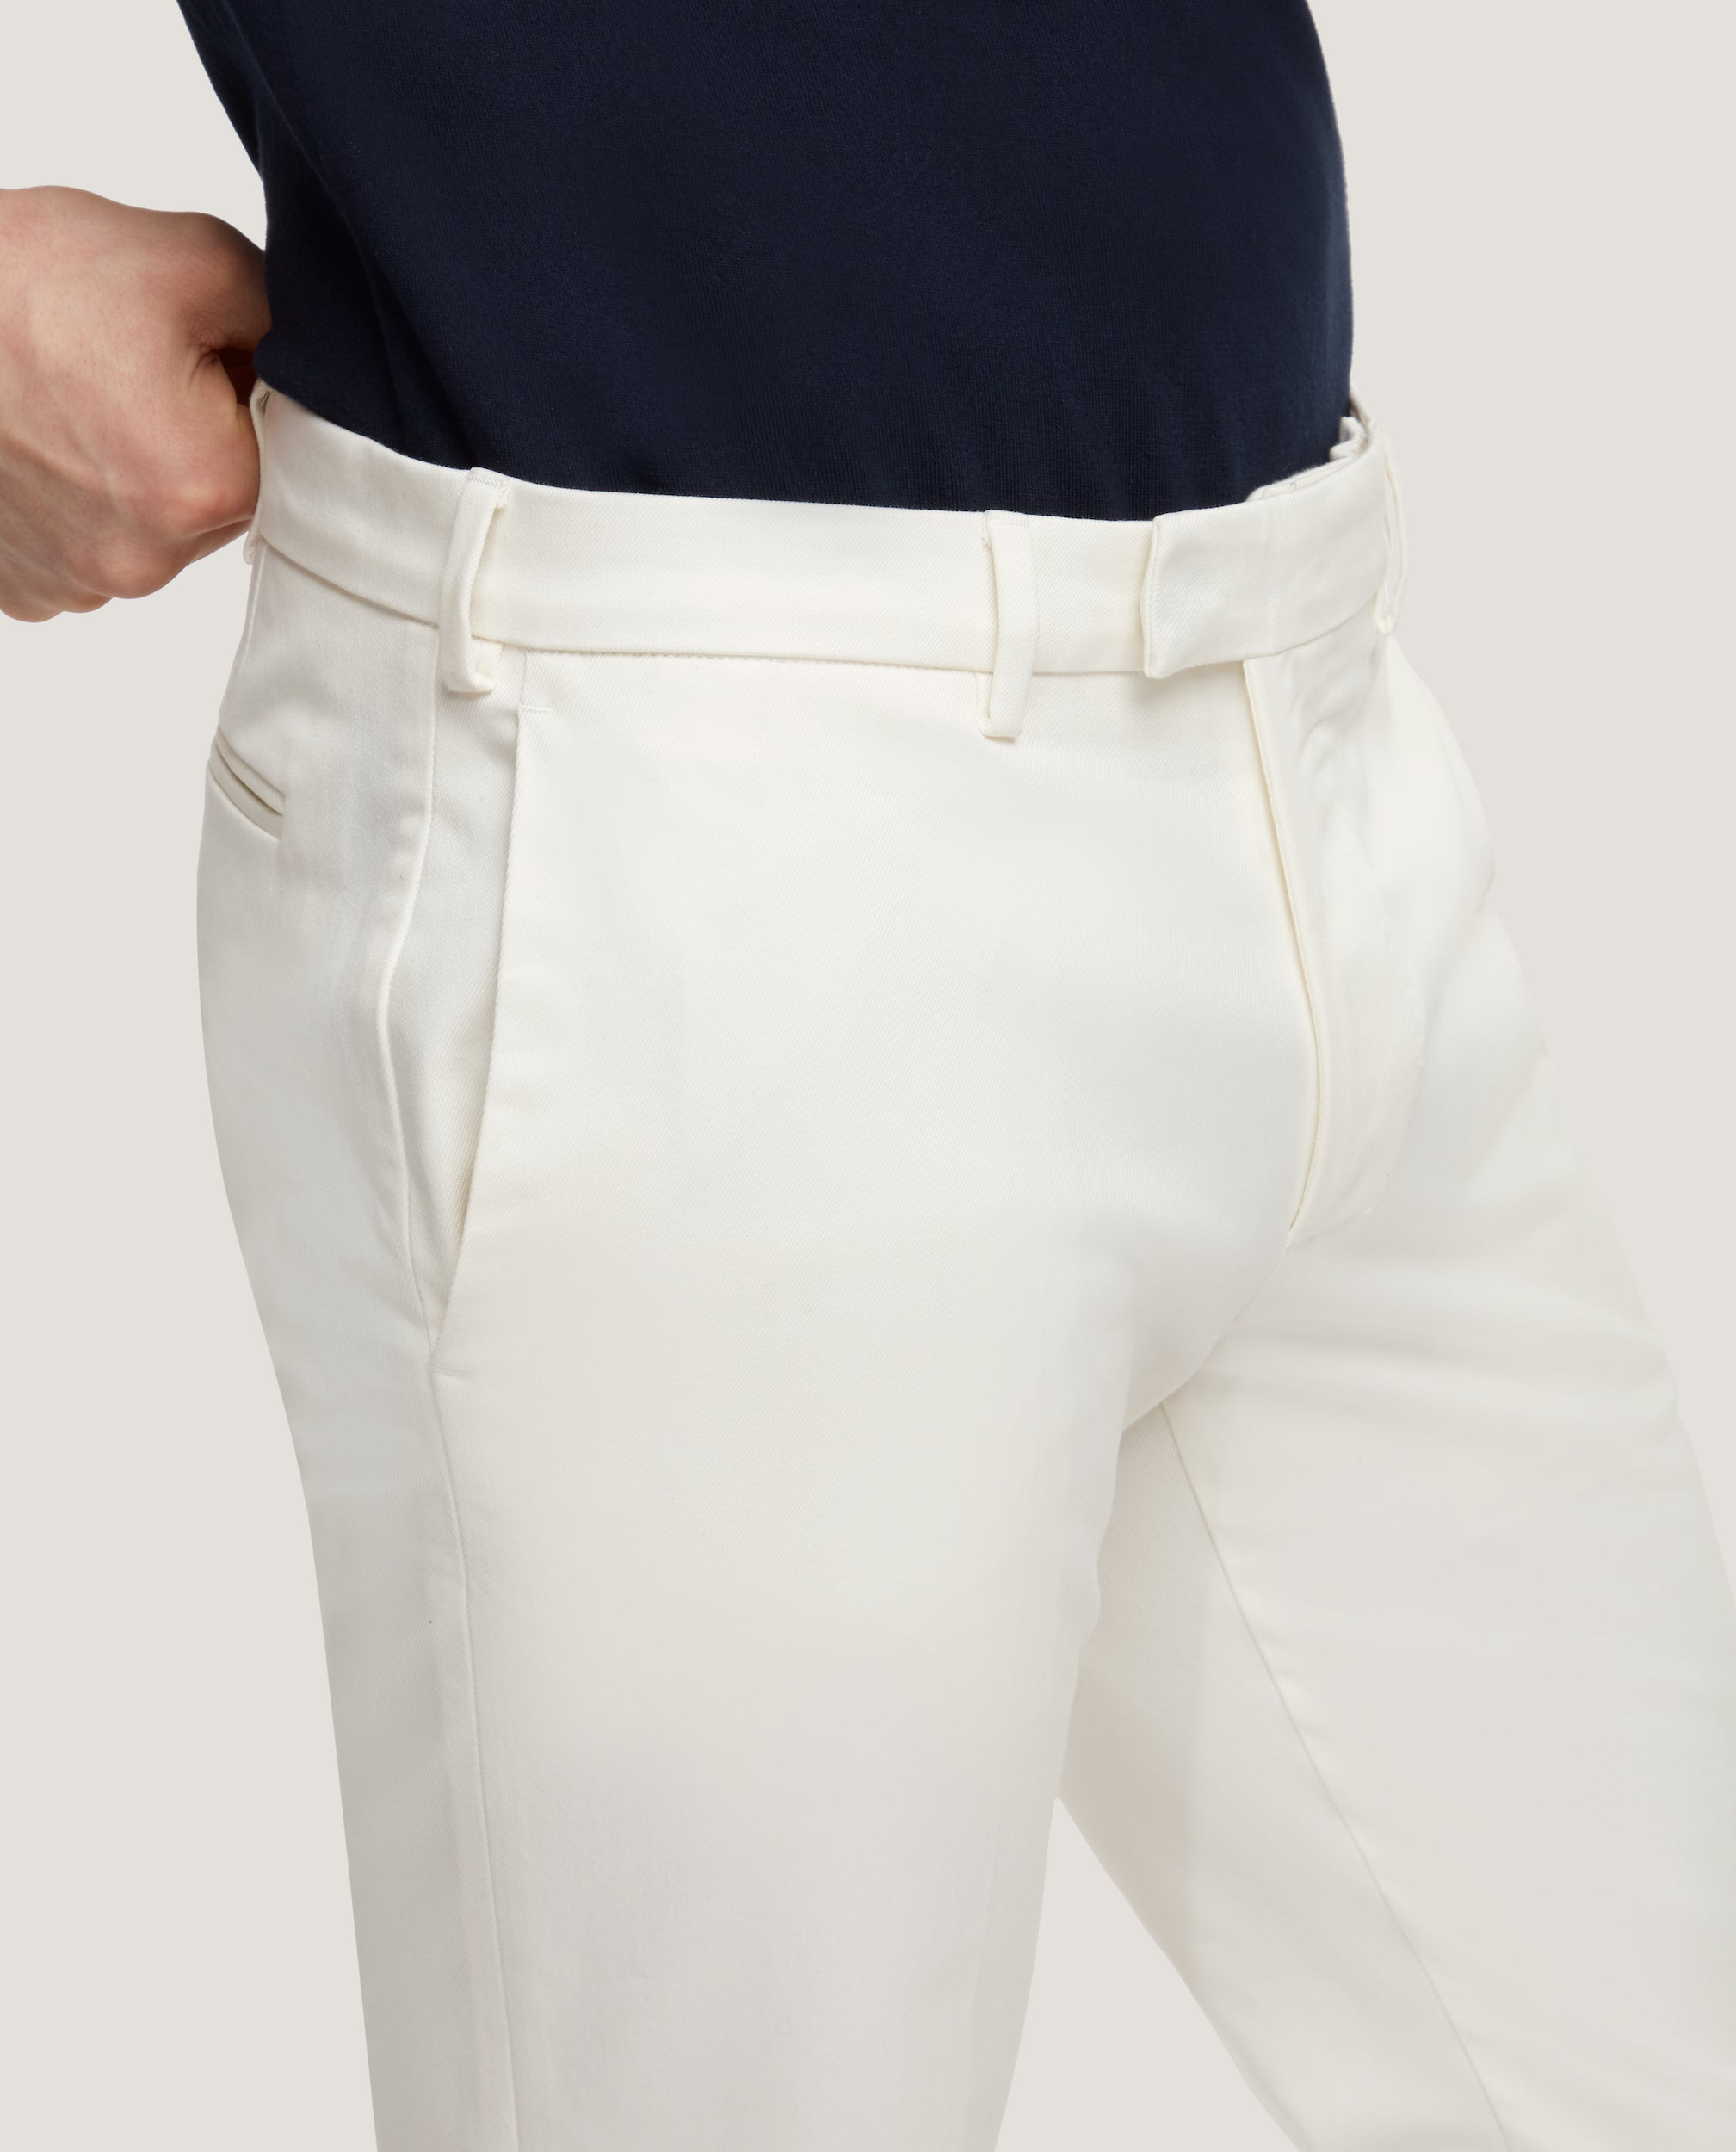 GEHRY Chino trousers | Slim fit | Cotton twill | Ivory